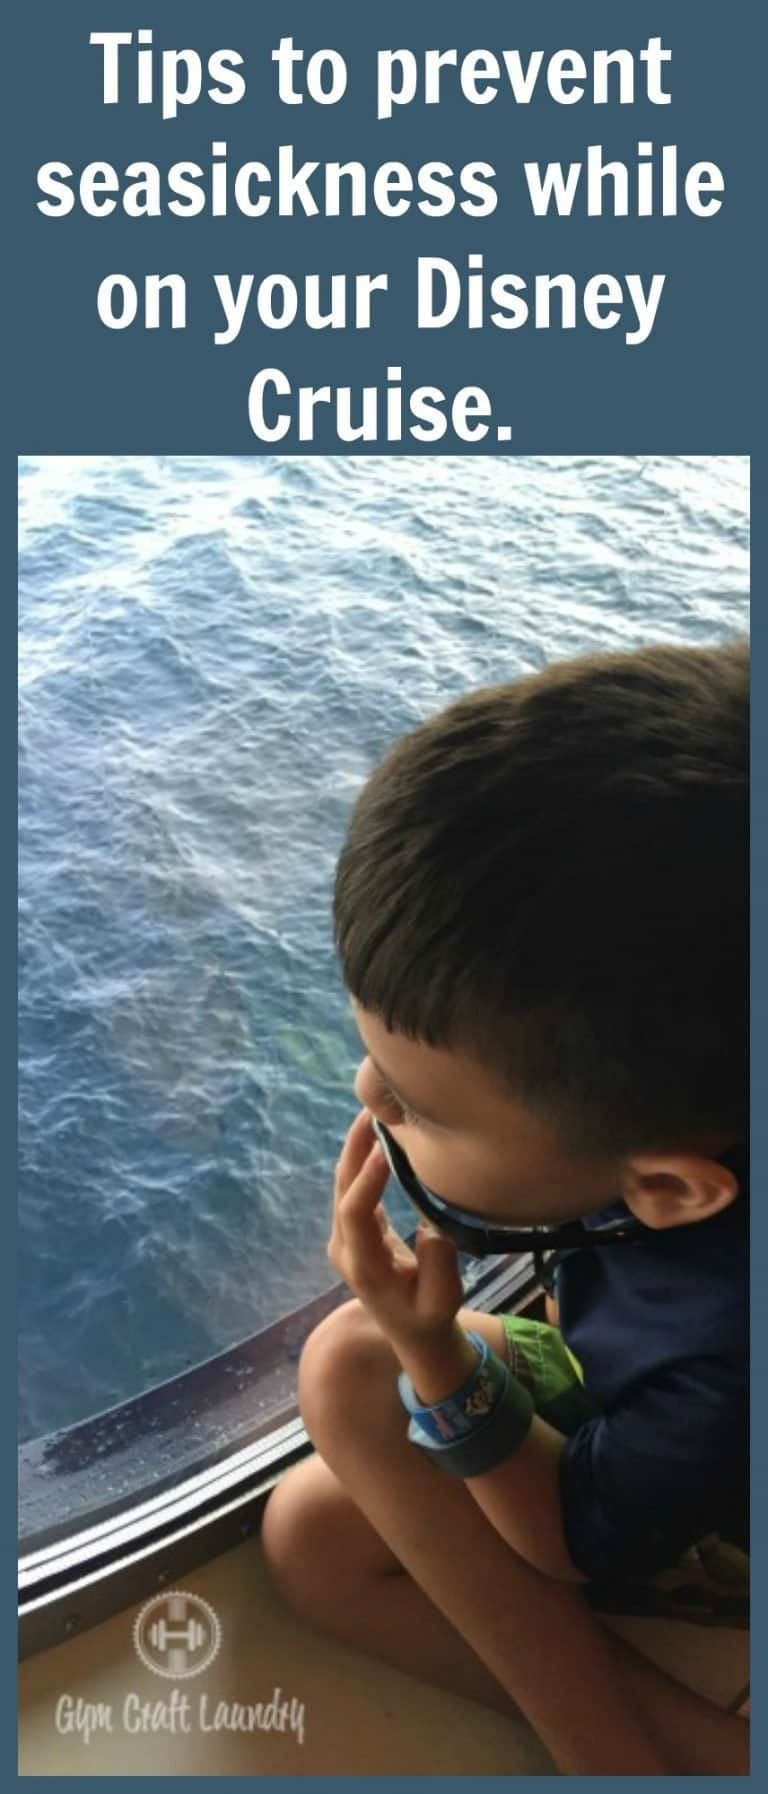 what is the best way to prevent seasickness